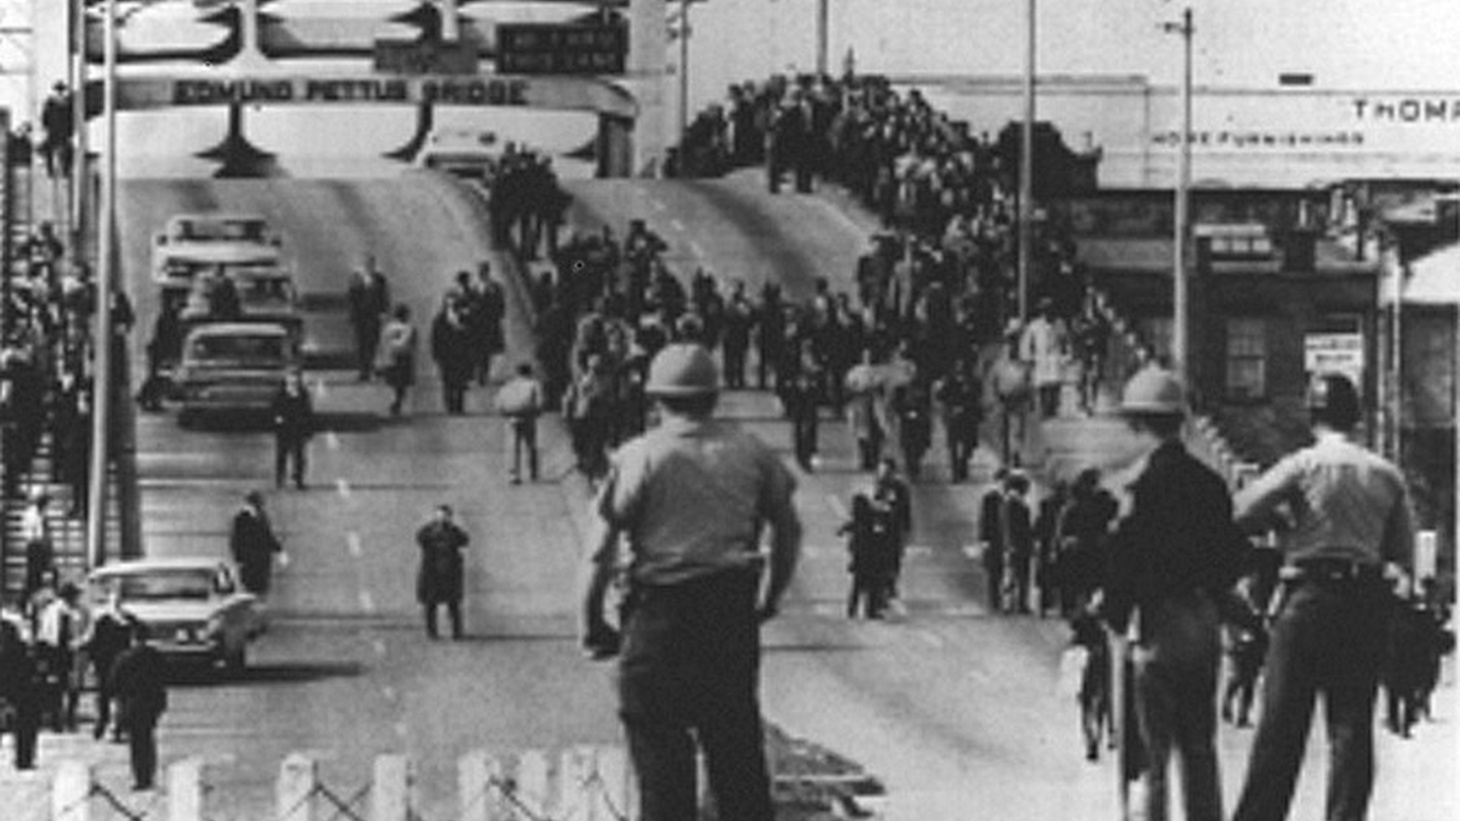 """On """"Bloody Sunday,"""" John Lewis and other civil rights marchers were brutally attacked by police and soldiers on the Edmund Pettus Bridge in Selma, Alabama."""